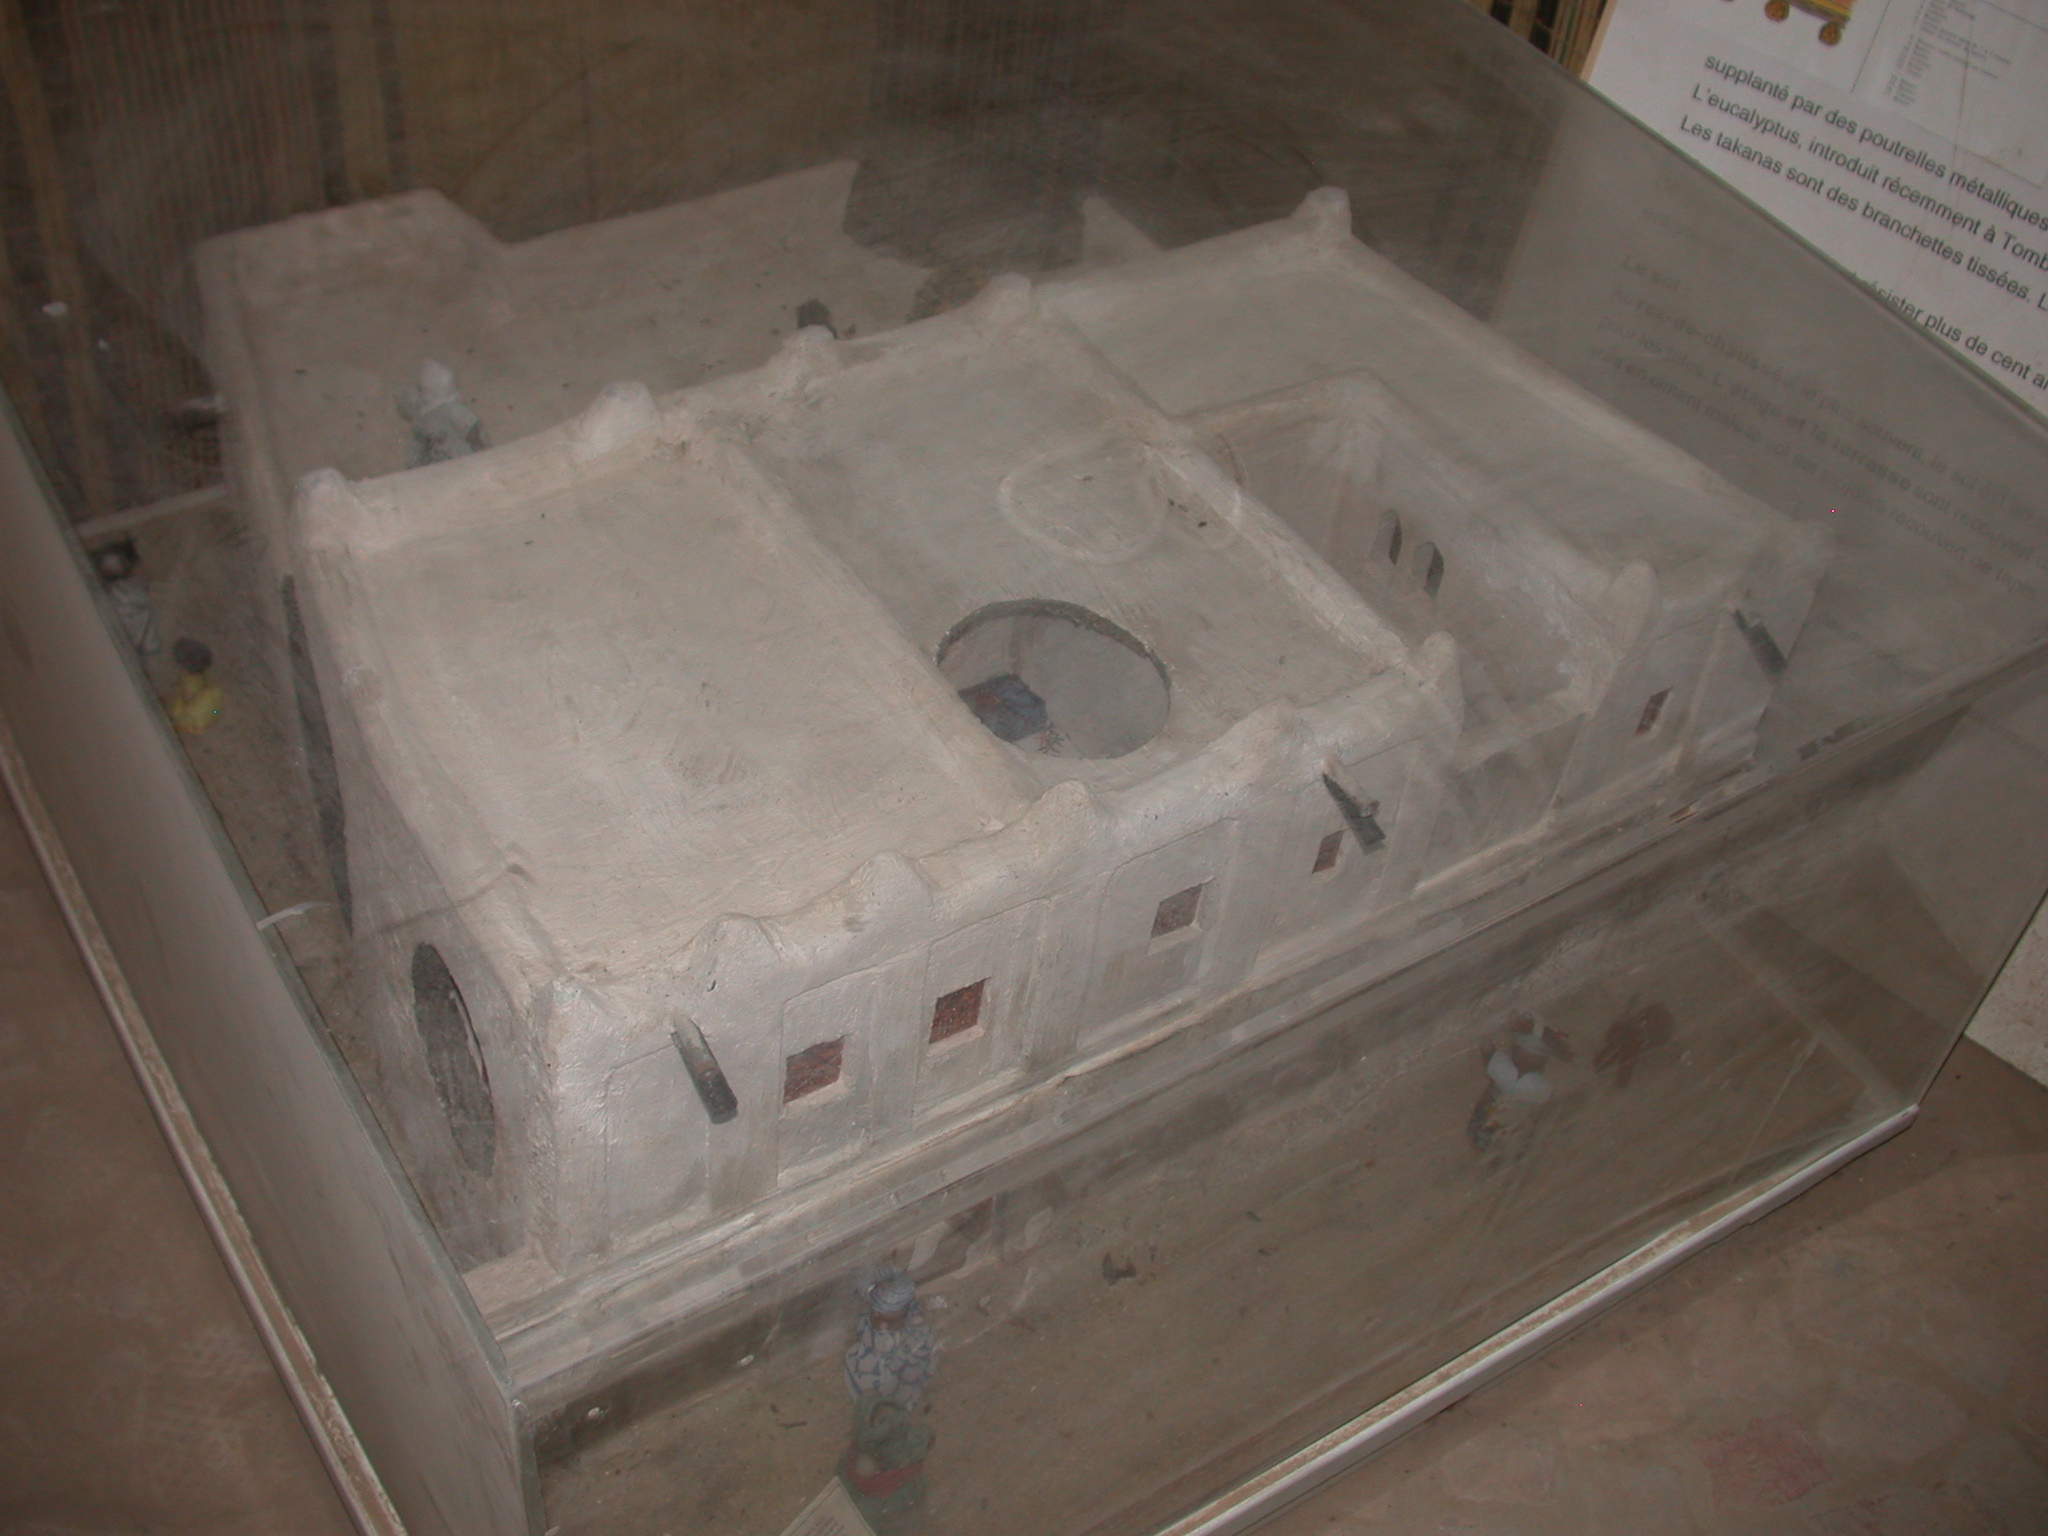 Model of a Timbuktu House, Part I, Timbuktu Ethnological Museum, Timbuktu, Mali